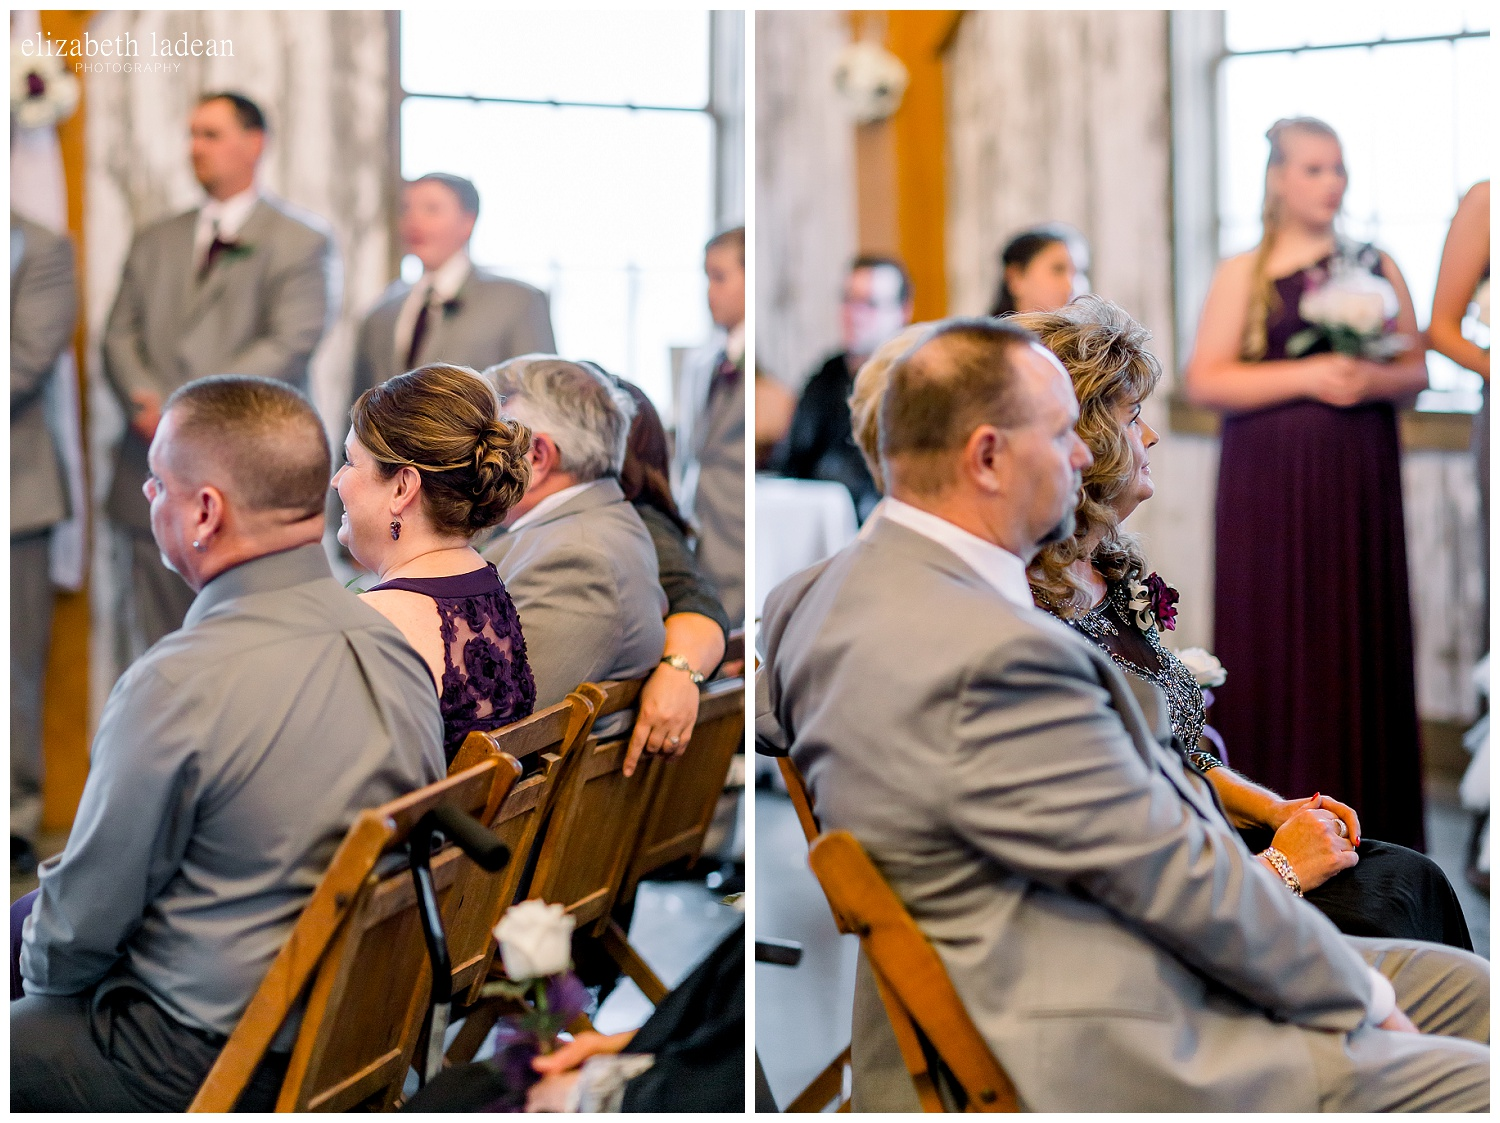 Weston-Timber-Barn-Wedding-Photography-L+A-elizabeth-ladean0photo_1890.jpg